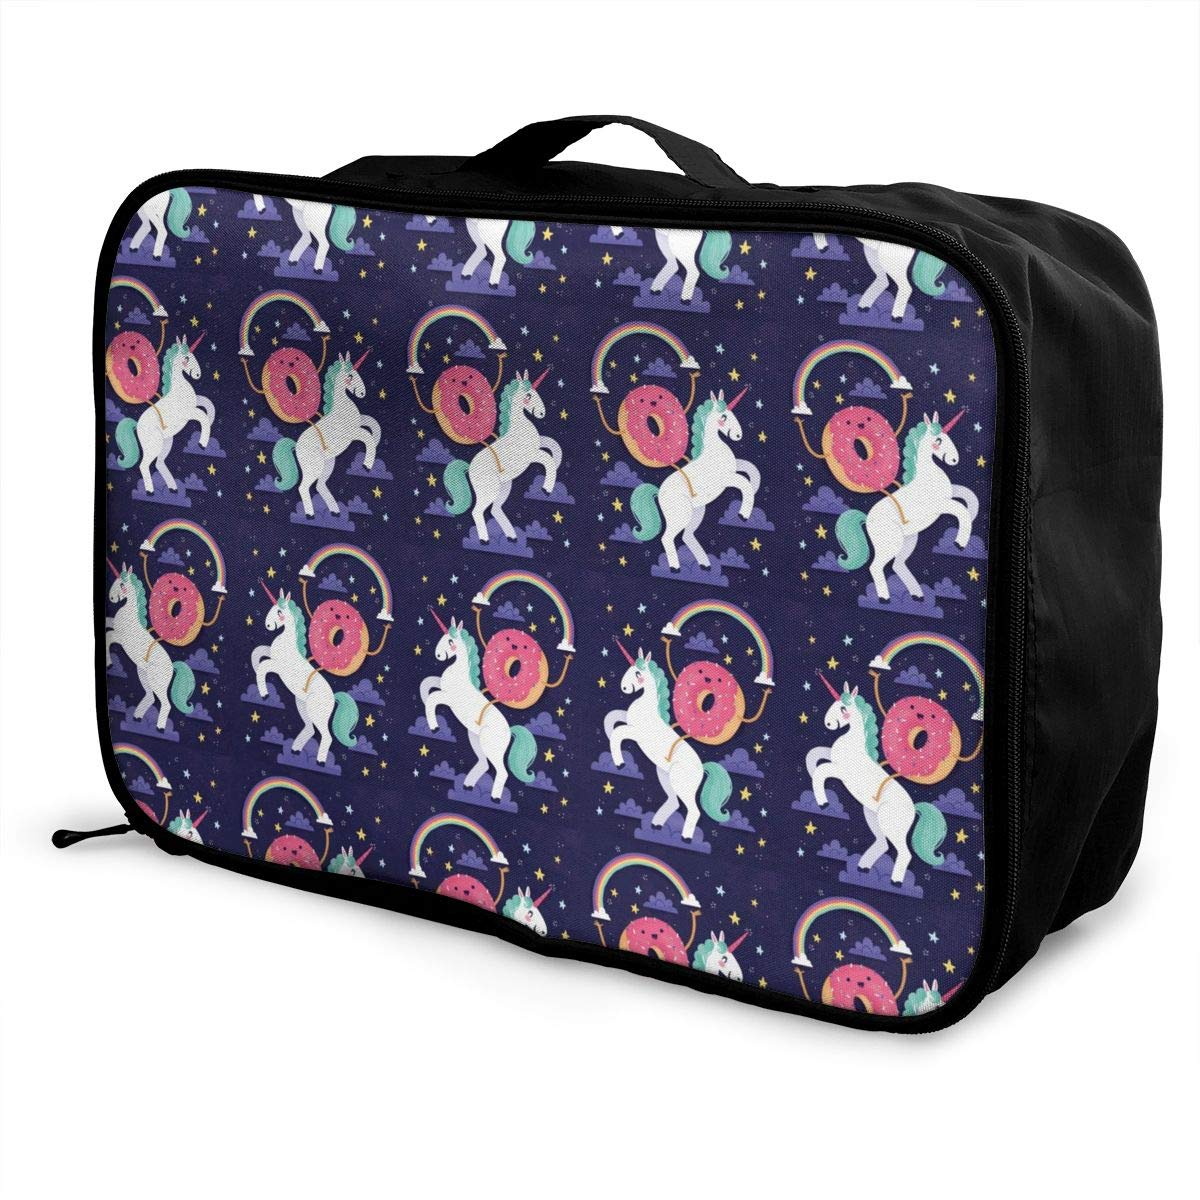 Cute Donut Rides On Rainbow Unicorn Overnight Bag Gym Hiking Travel Duffle Bag Weekender Bag In Trolley Handle Nylon Lightweight Tote Luggage Bag Water Repellent Luggage Hanging Bag